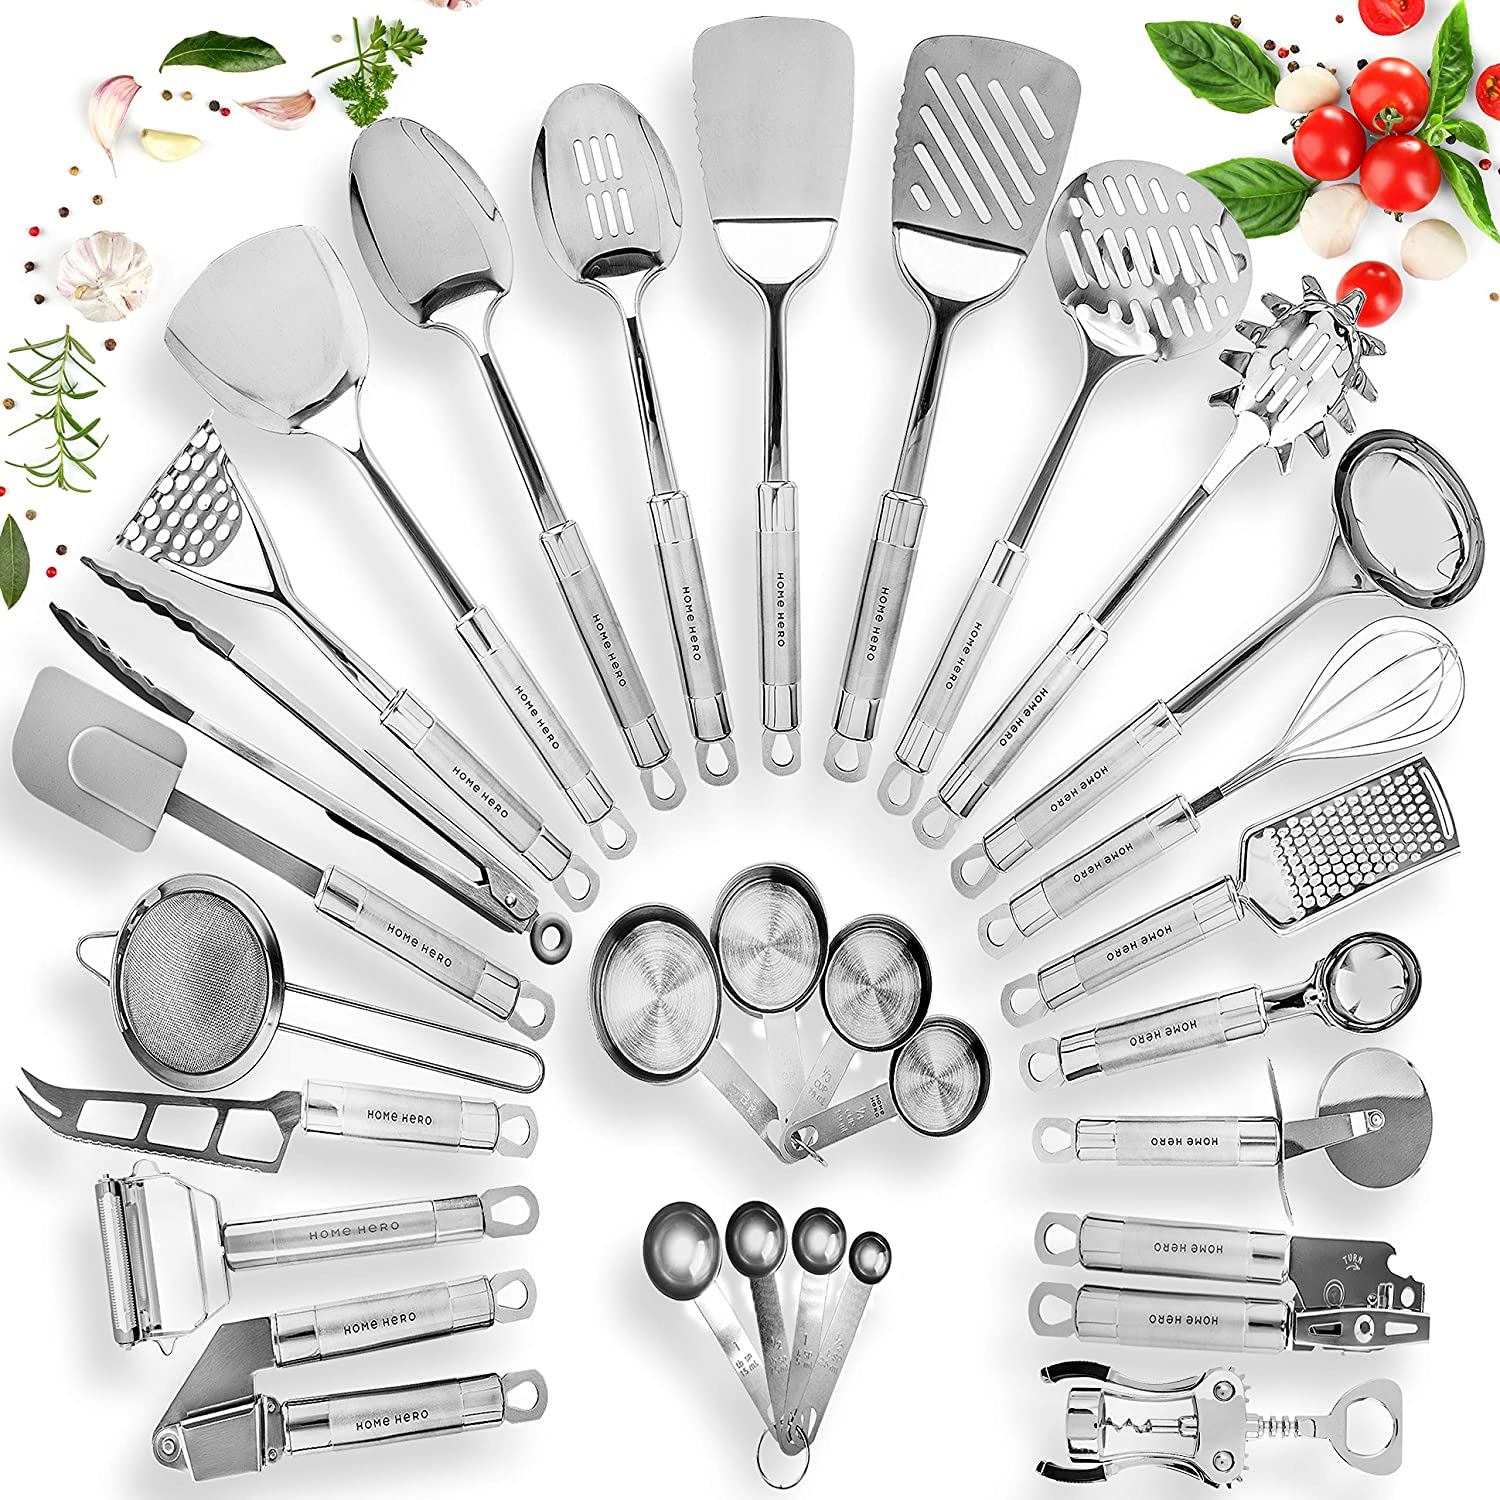 HomeHero Stainless Steel Kitchen Utensil Set - 29 Cooking Utensils - Nonstick Kitchen Utensils Cookware Set with Spatula - Best Kitchen Gadgets Kitchen Tool Set Gift